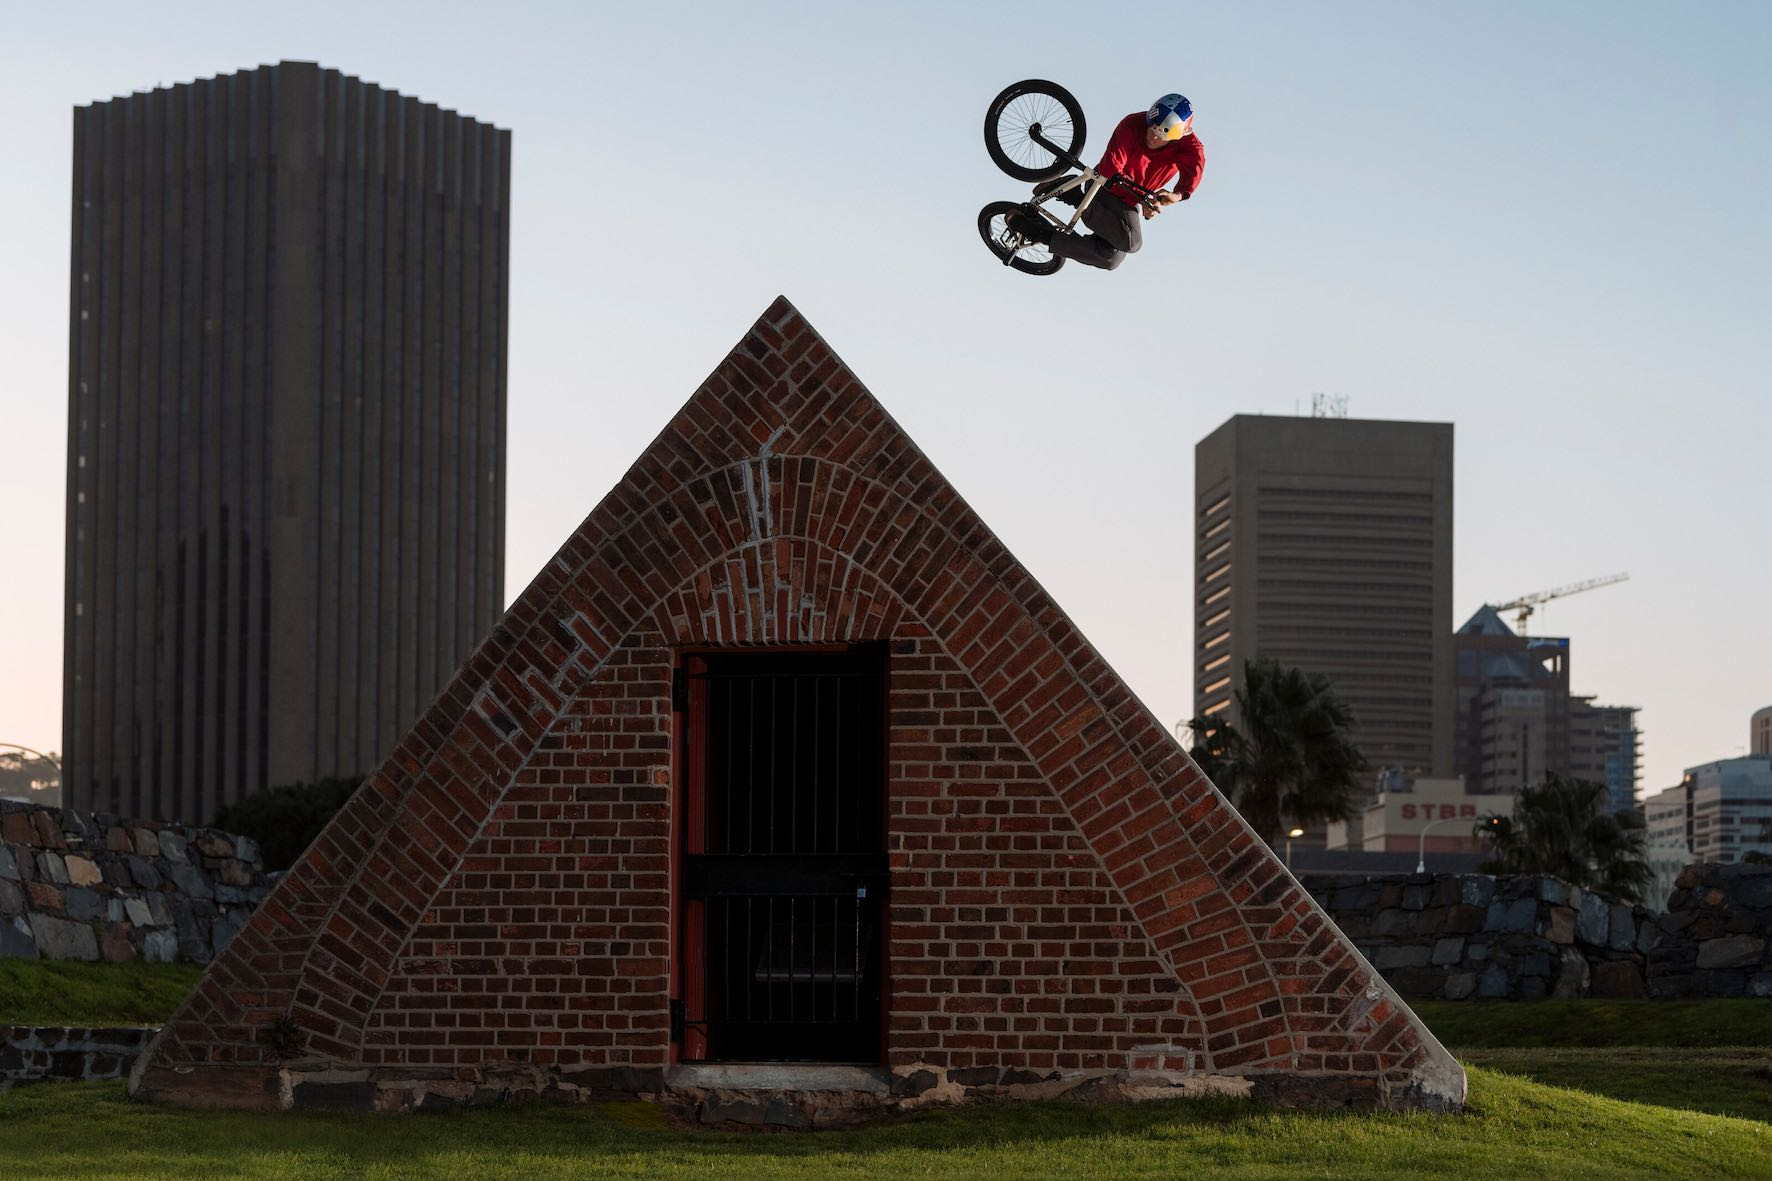 BMX riding with Murray Loubser for his Shapes in the City video project